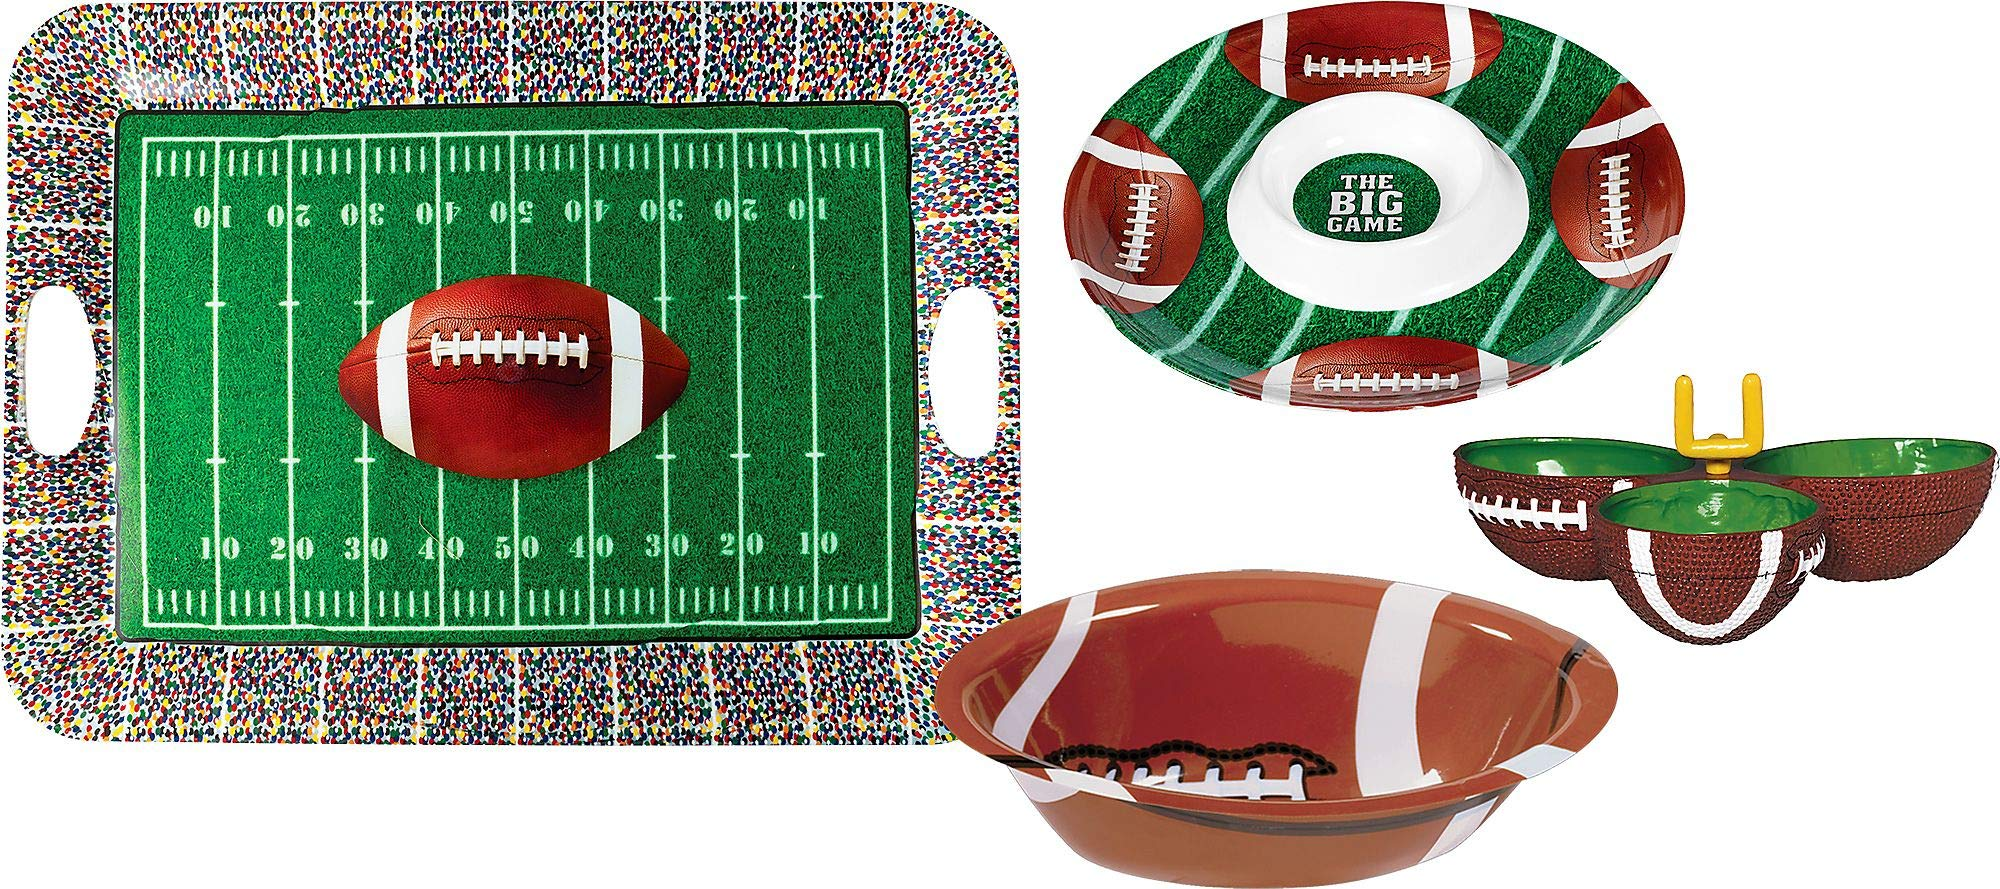 Party City Football Serveware Supplies, Include a Serving Tray, a Chip and Dip Tray, a Serving Bowl, and Condiment Dish